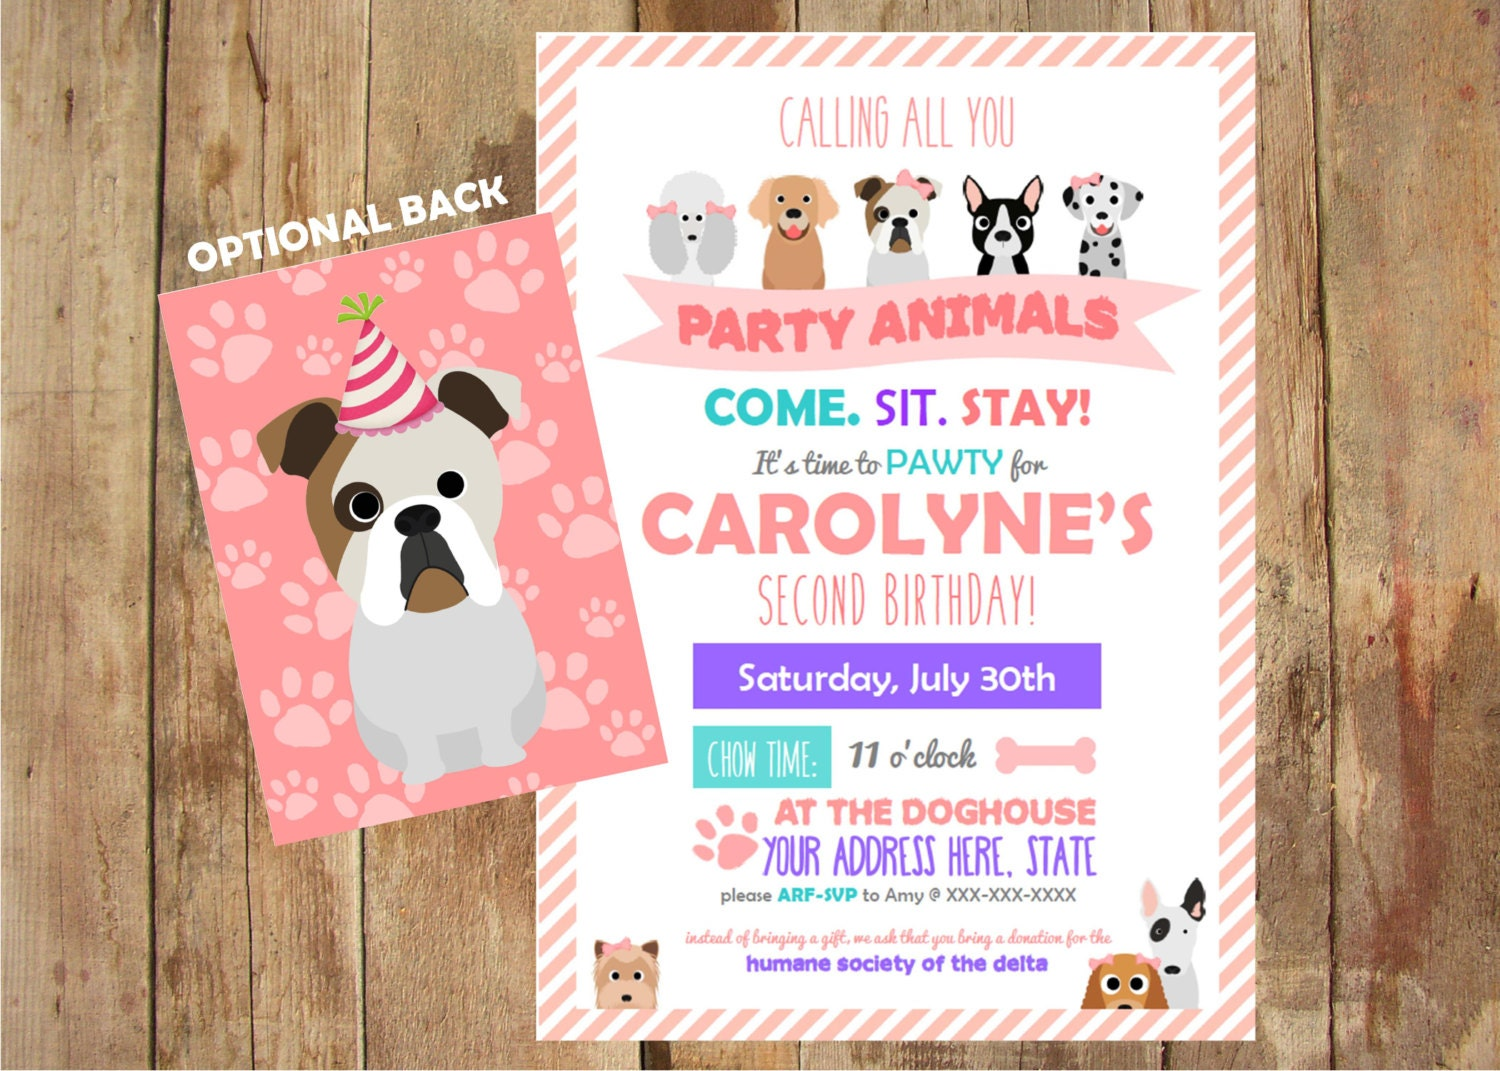 Puppy Party Invitations Come Sit Stay Personalized – Puppy Party Invitation